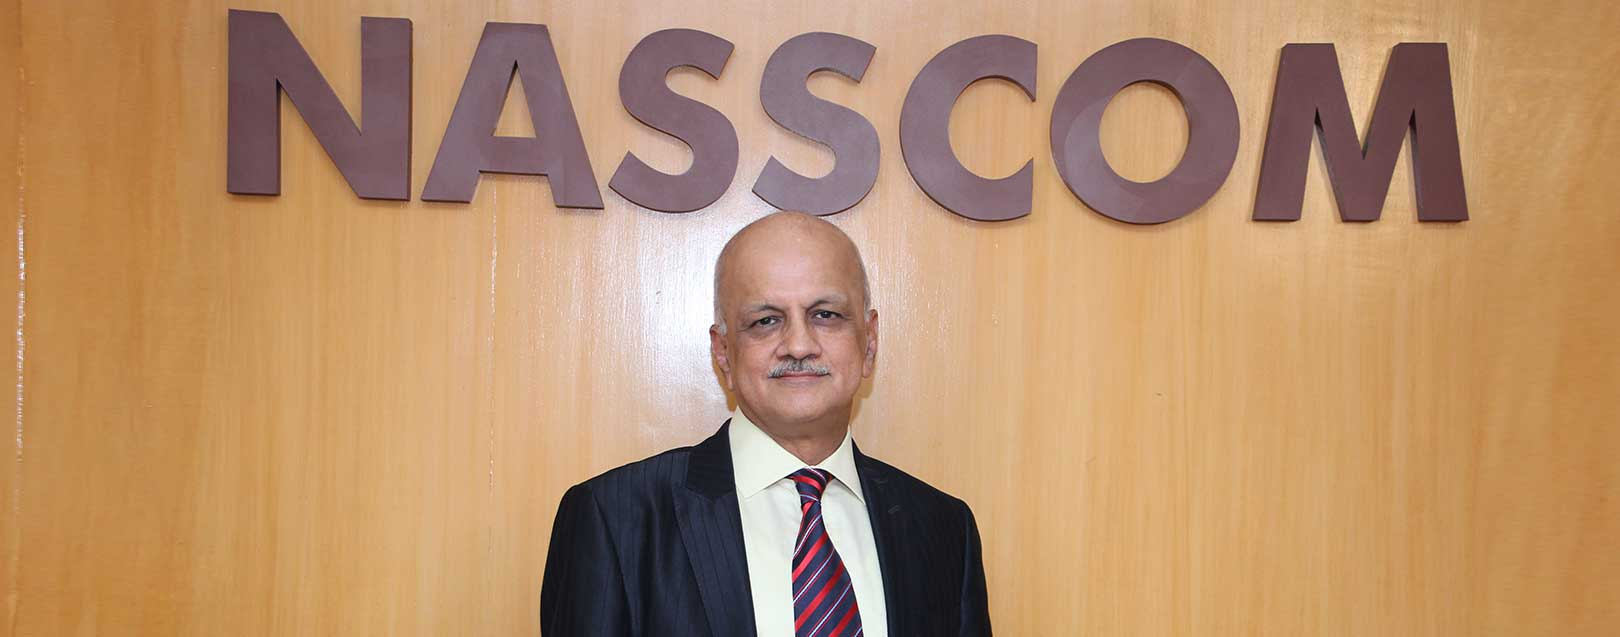 NASSCOM lowers IT export growth estimates to 7-8% in 2017-18